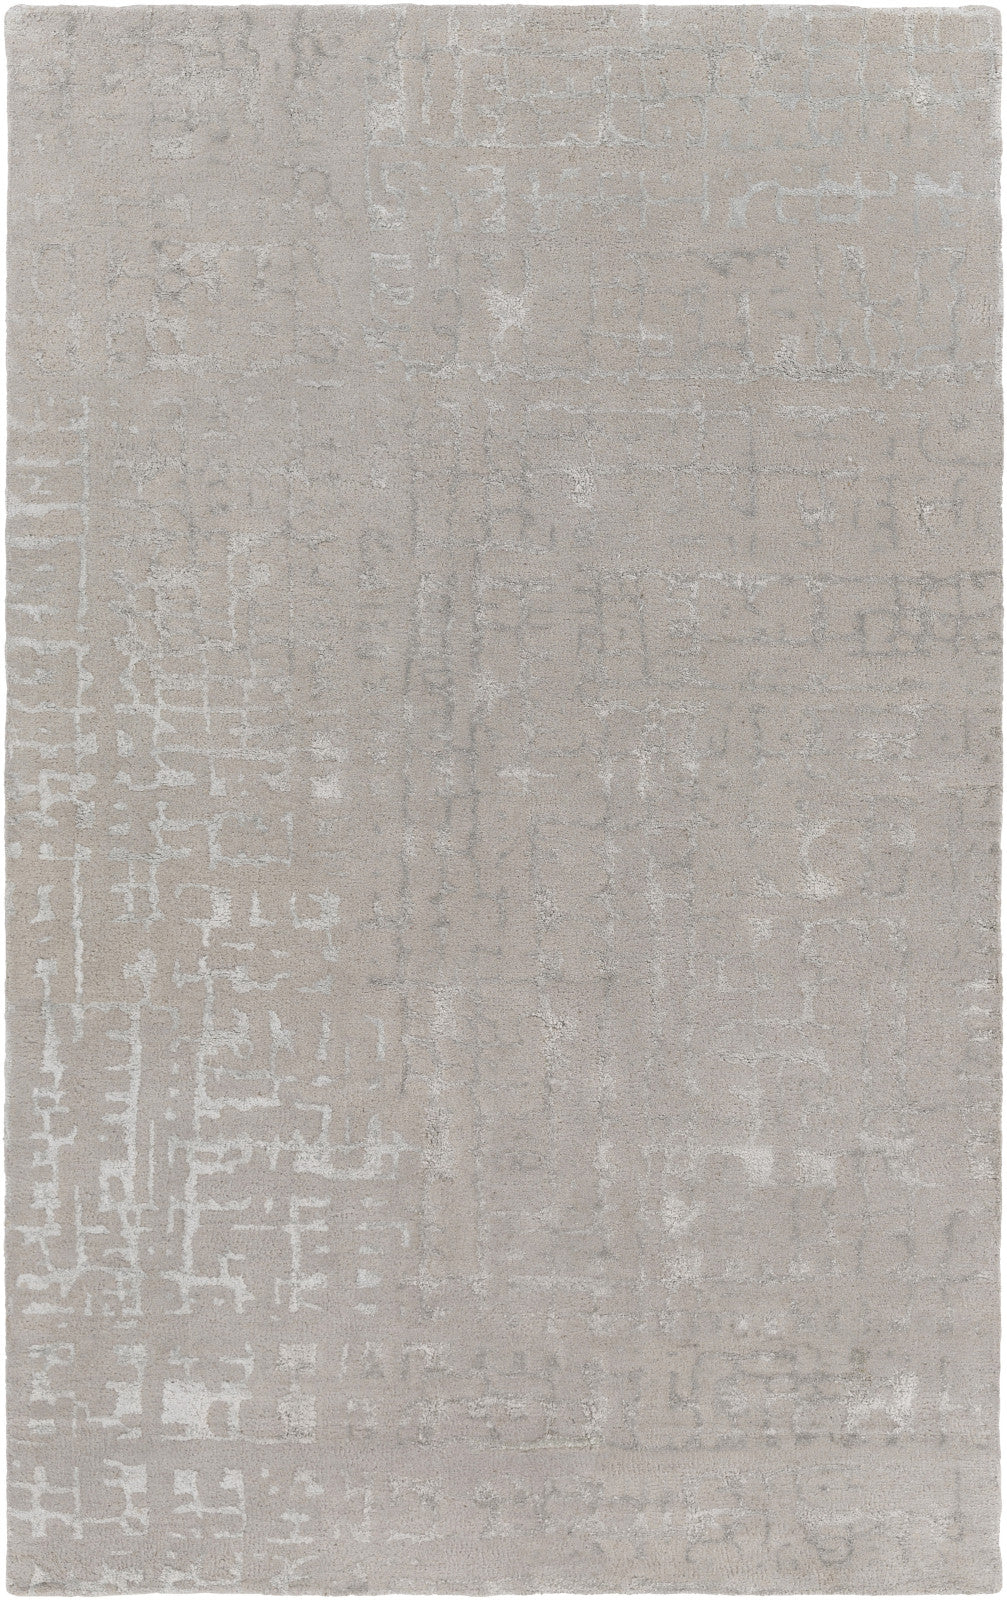 Surya Mount Perry MTP-1029 Area Rug by Florence Broadhurst main image